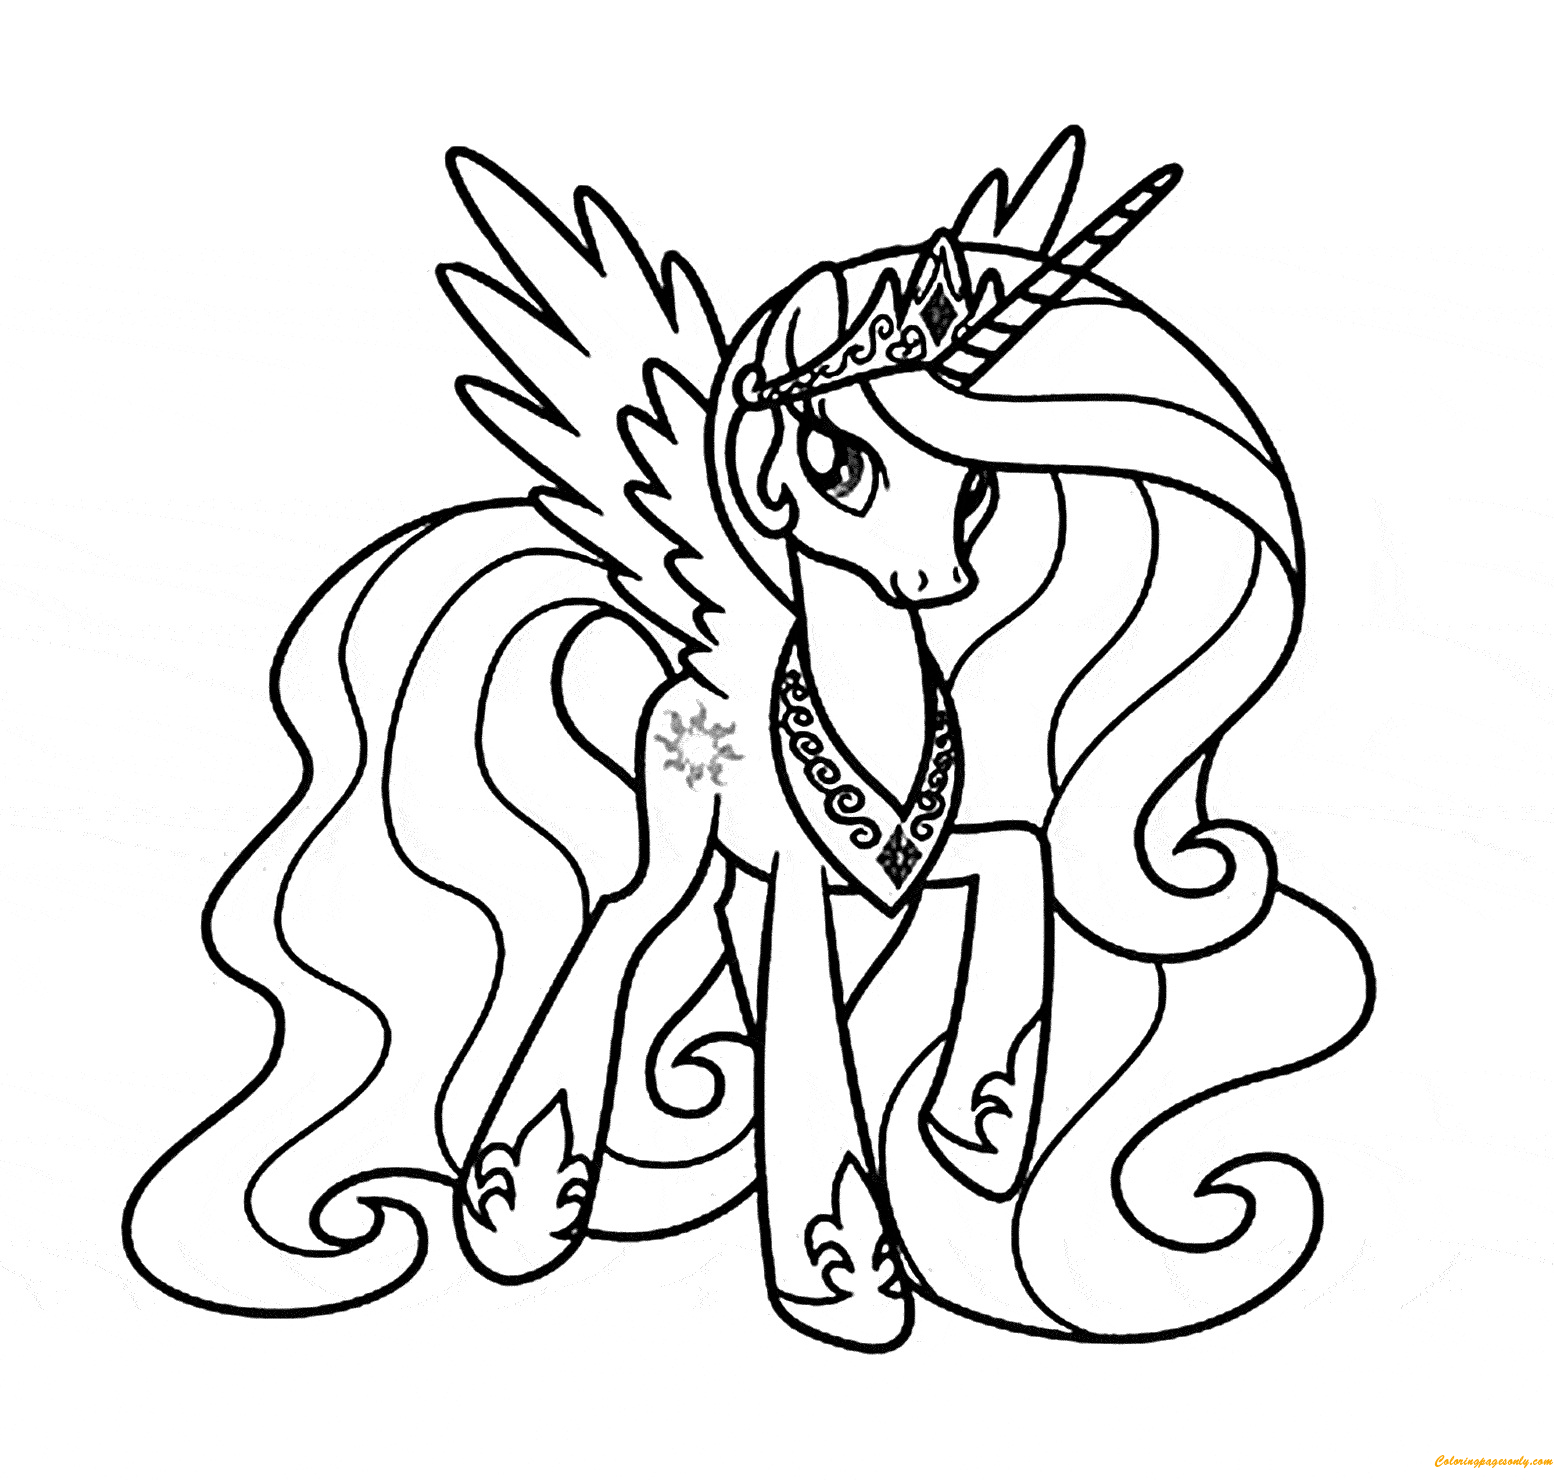 full screen download print picture - Princess Celestia Coloring Page